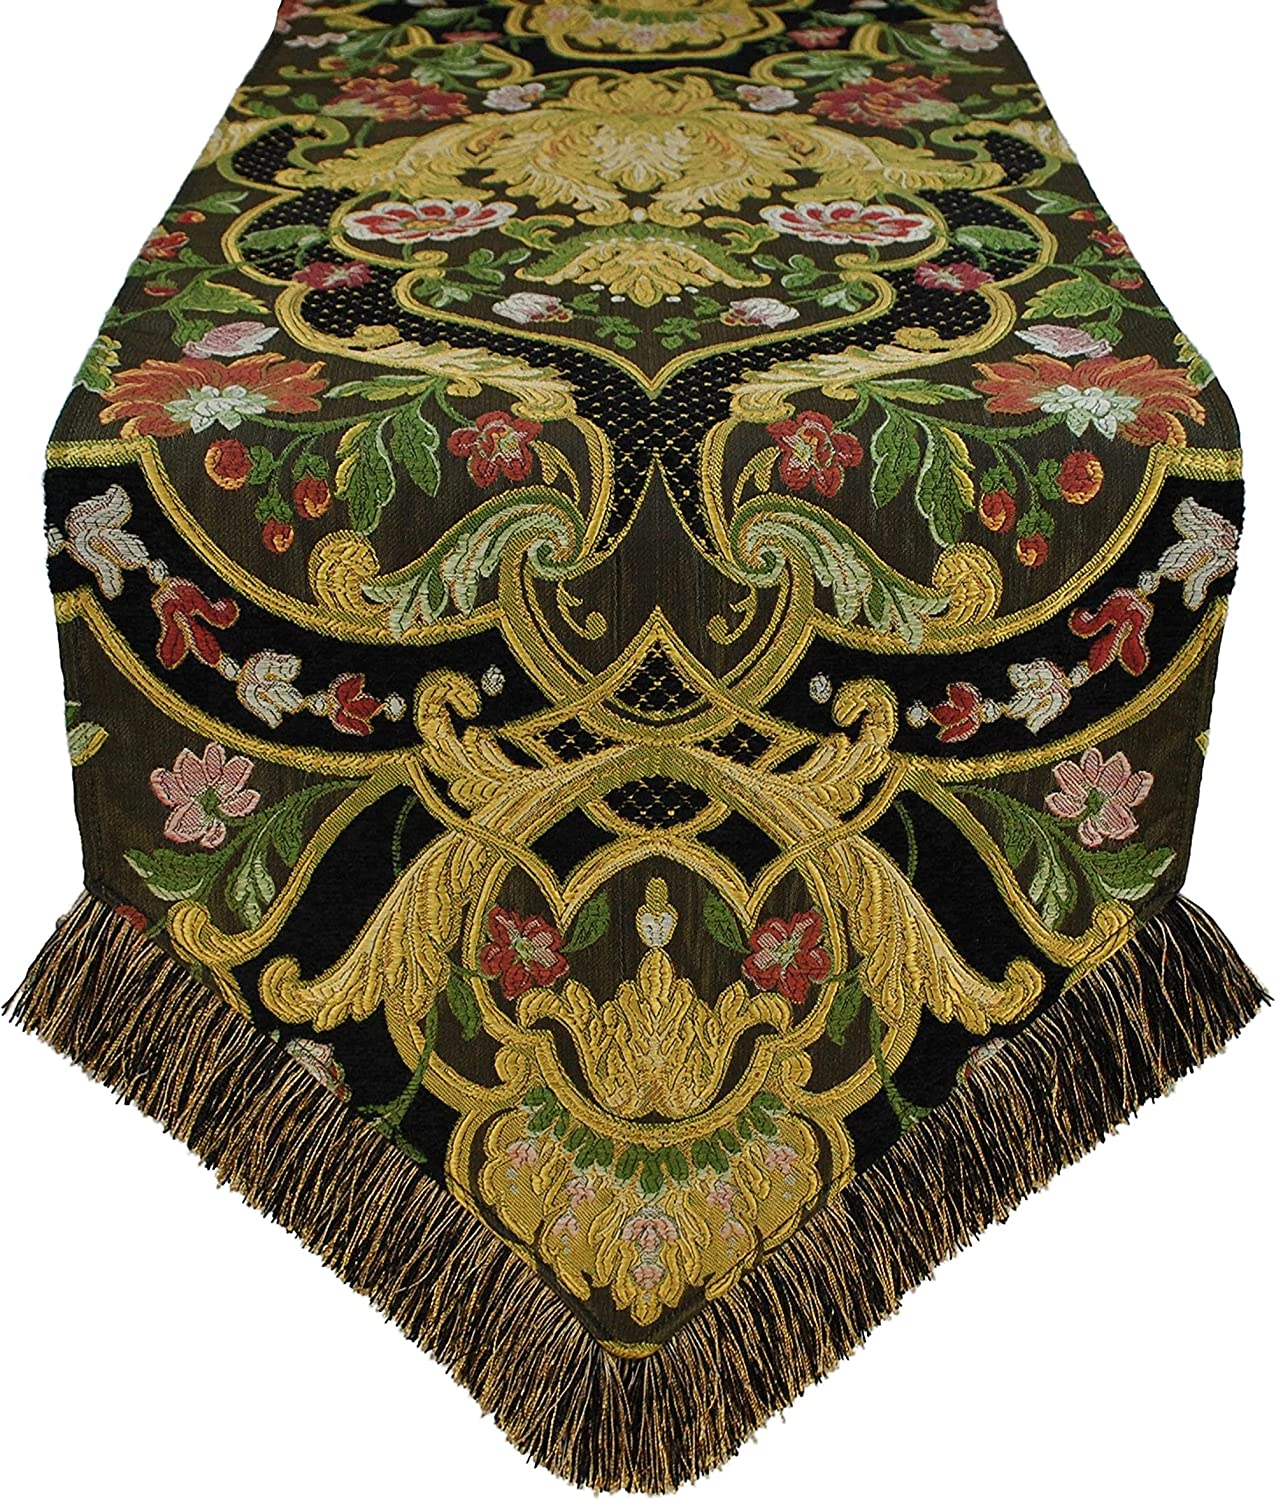 Austin Indianapolis Mall Horn Classics Gustone Luxury Design Table Runner Paisley Branded goods